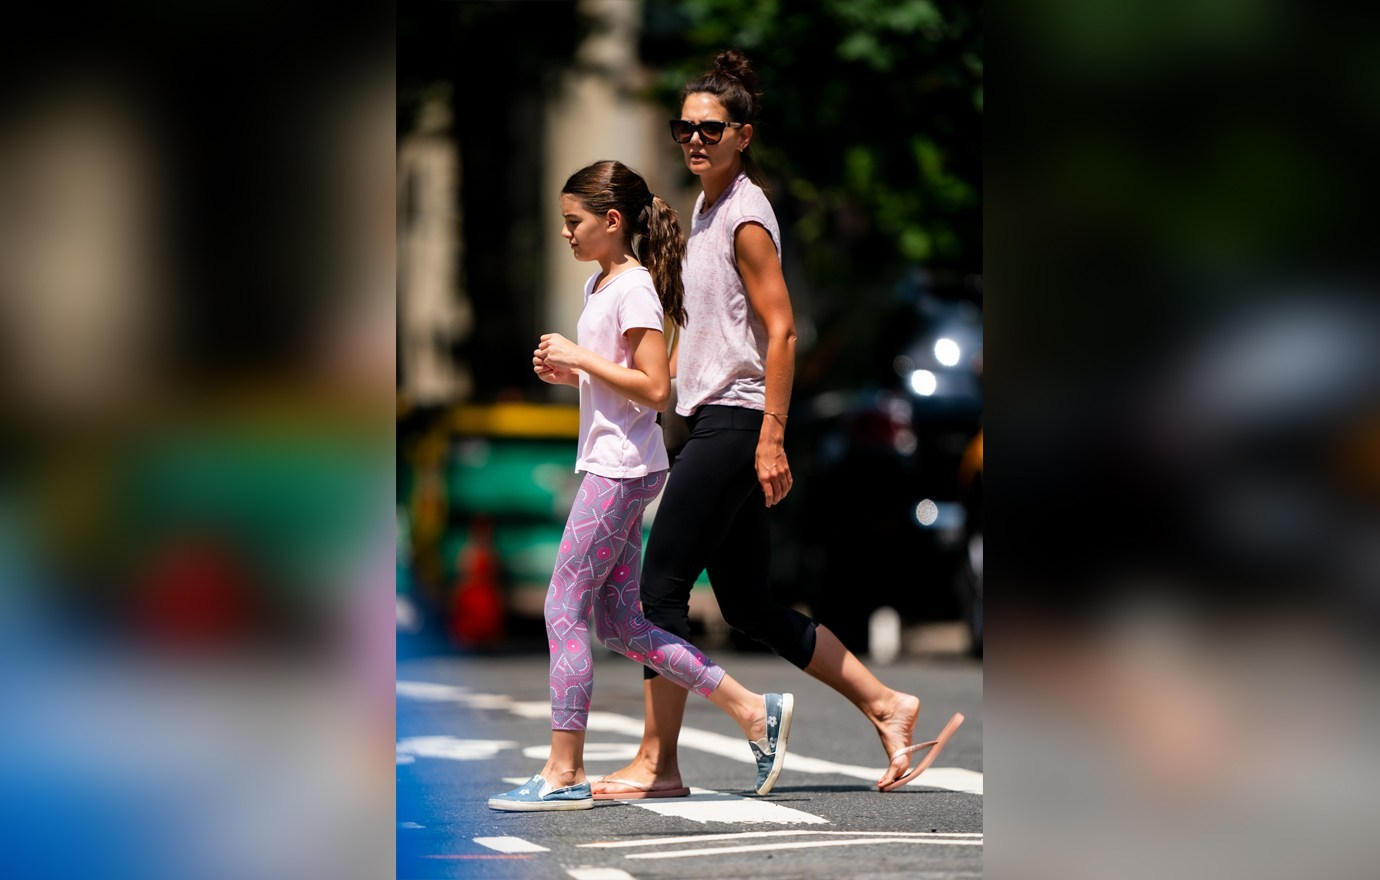 NEW YORK, NEW YORK - JULY 22: Suri Cruise (L) and Katie Holmes are seen in the Upper West Side on July 22, 2019 in New York City. (Photo by Gotham/GC Images)